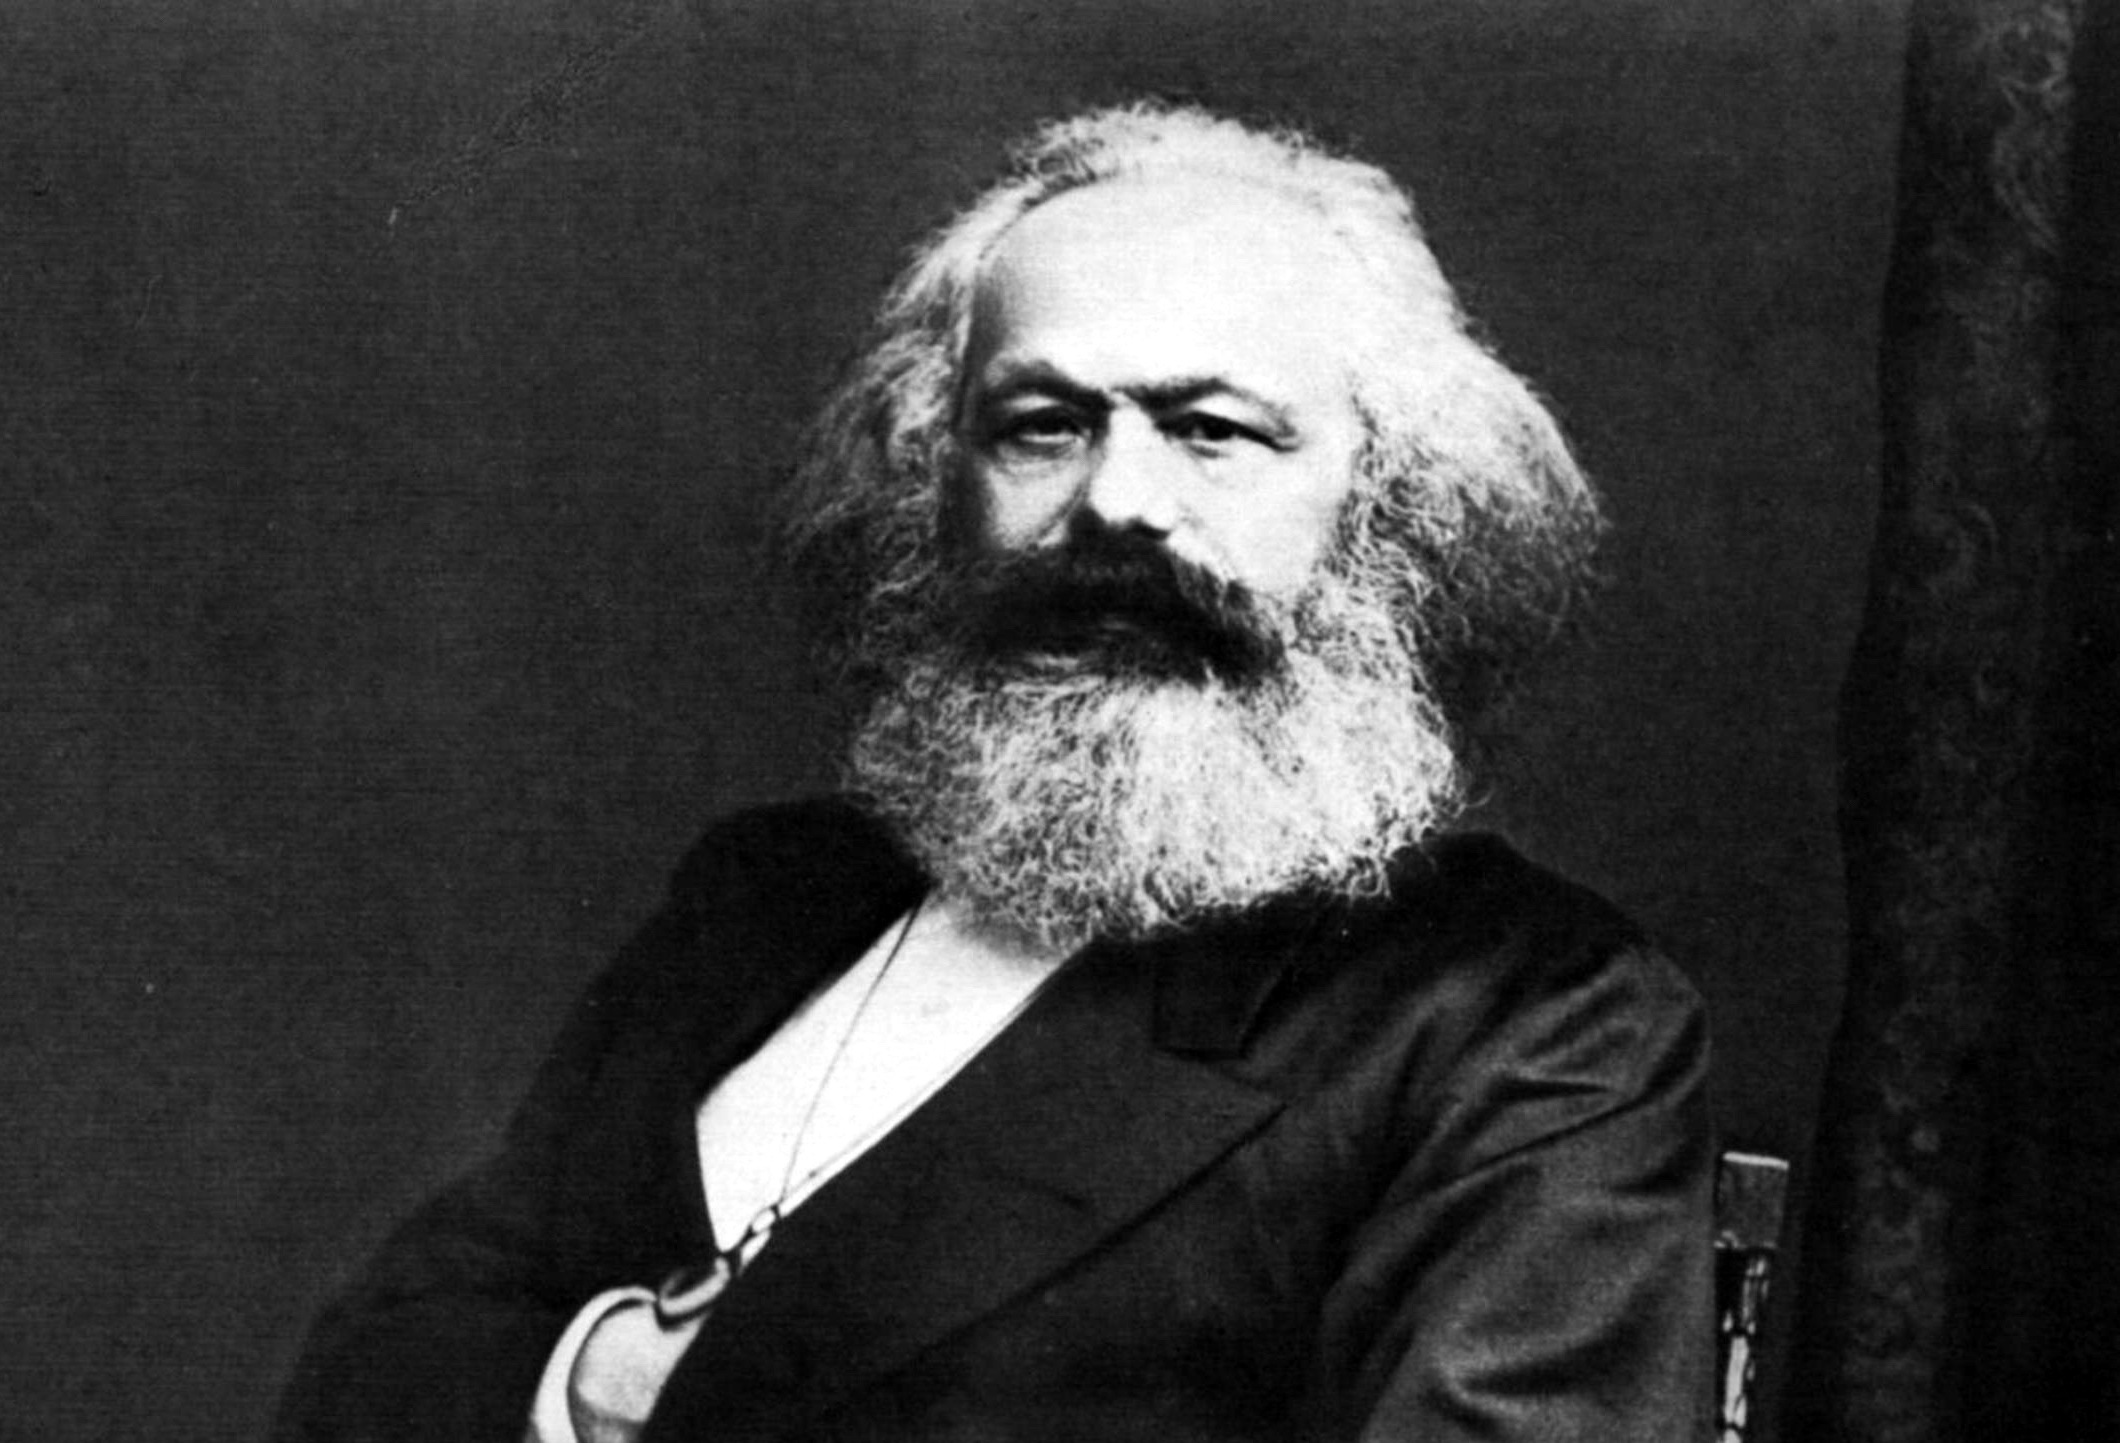 reaction paper on karl marx What do you make of karl marx's contributions to sociology  marx saw this framework as untenable and anticipated that the monetary  custom reaction paper.